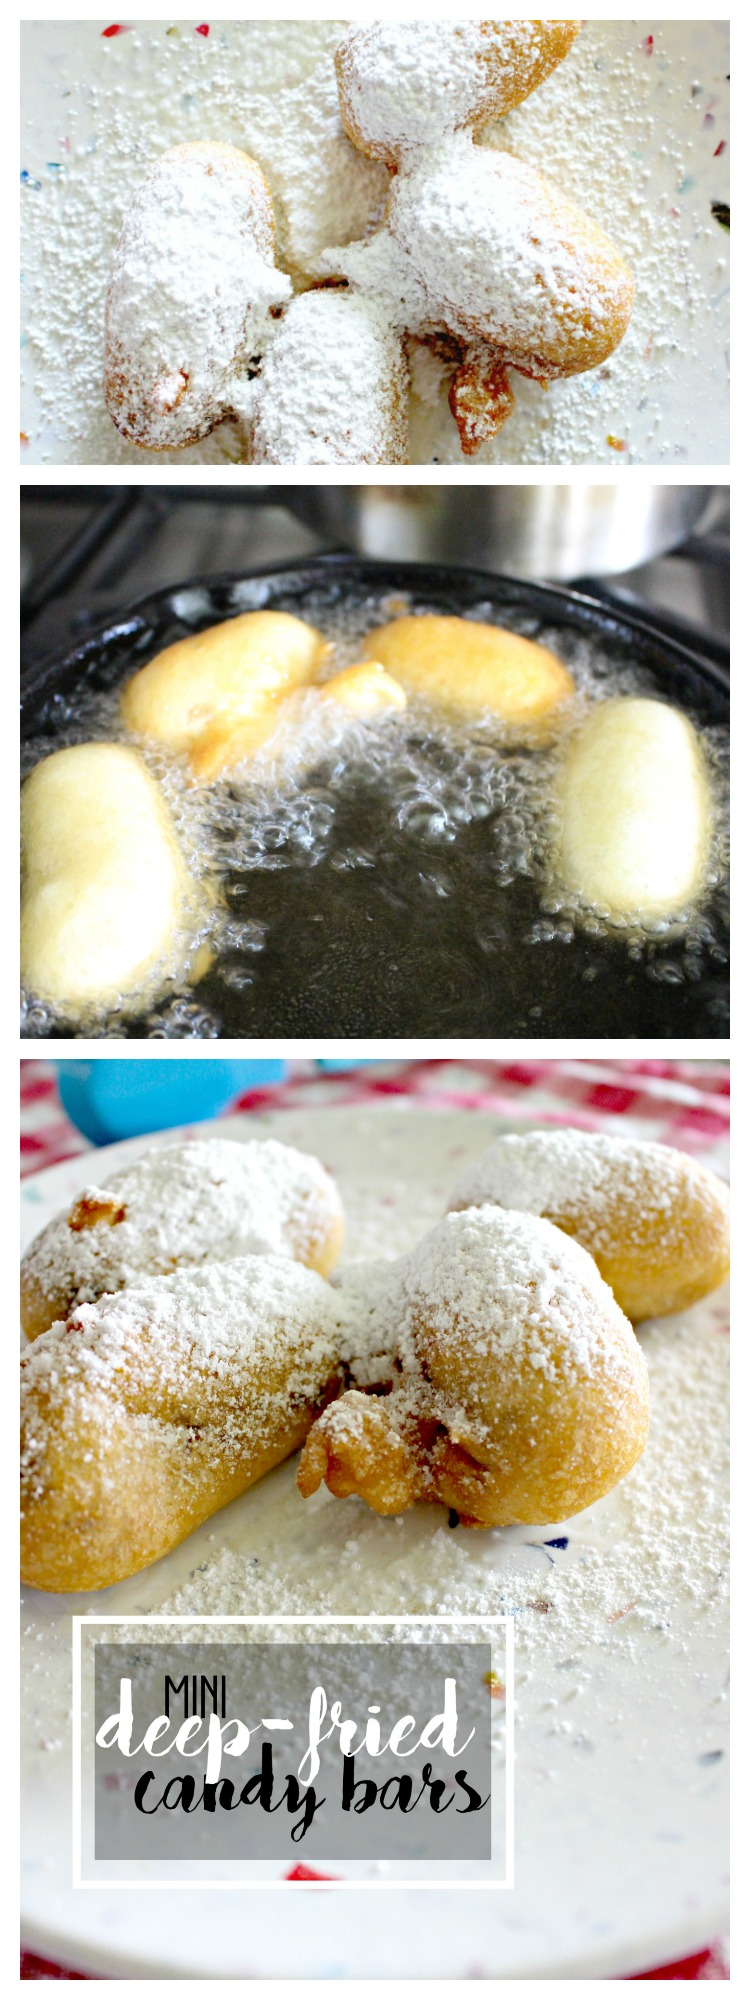 Deep-Fried Mini Candy Bars at Home! It Only Takes 3 Ingredients!